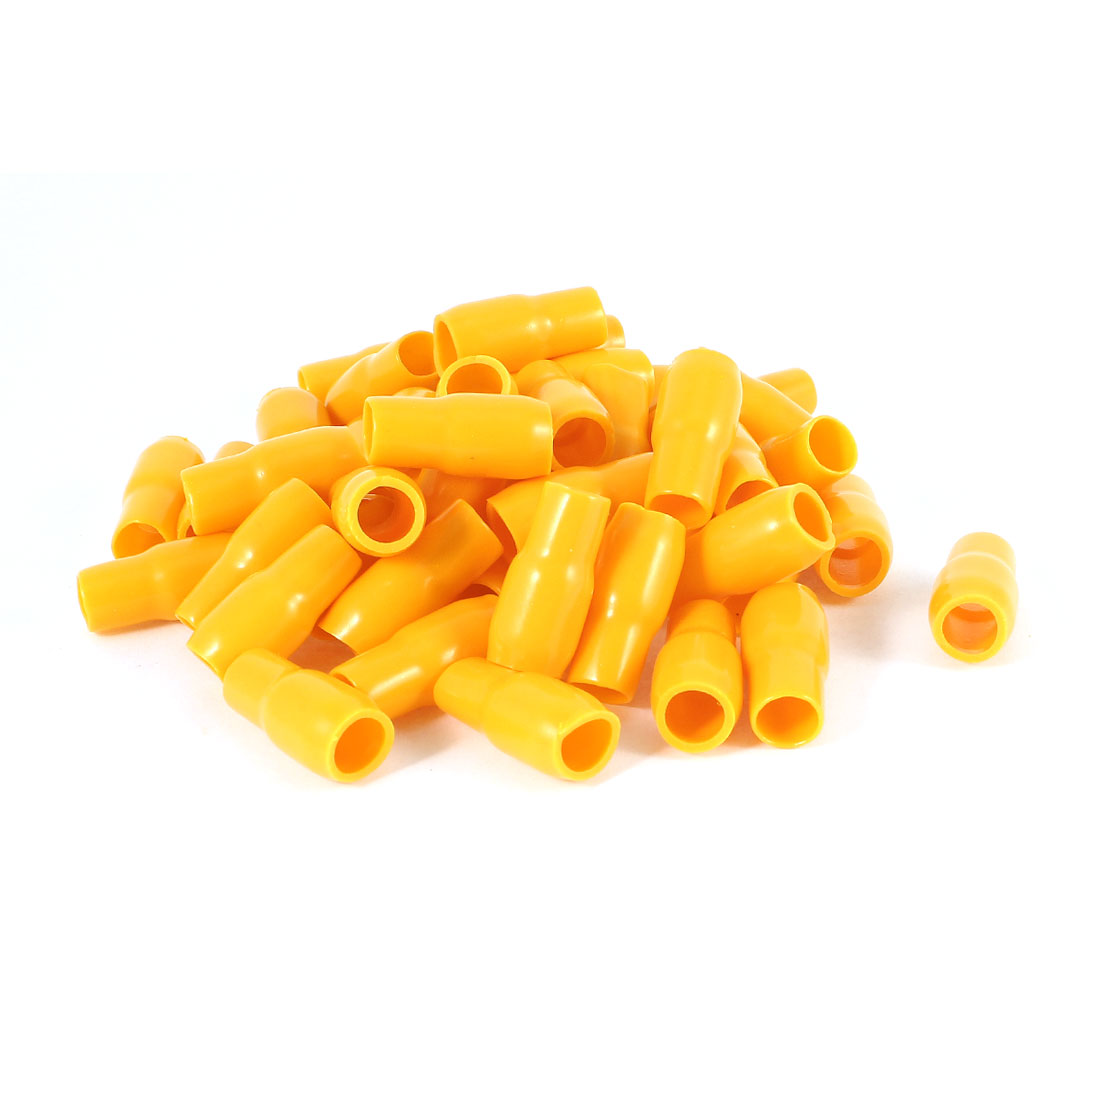 50 Pcs Orange Soft PVC Wire V-14 16mm2 Crimp V Terminal End Insulated Sleeves Caps Cover